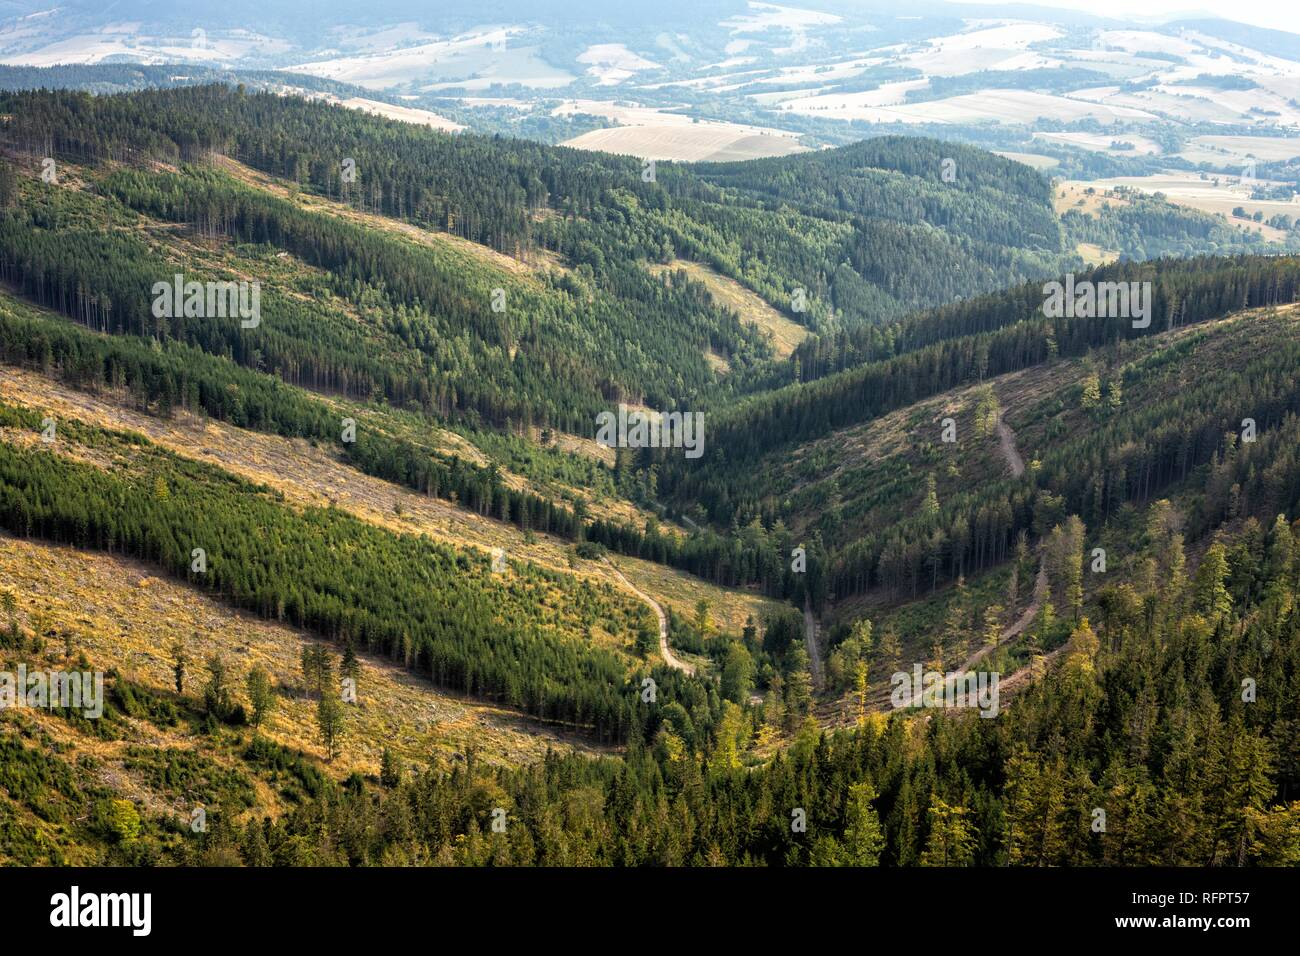 Mountain landscape on a summer day. Summer in the mountains. Beautiful panorama for a postcard or calendar. View of the green slopes and hills. Journe - Stock Image